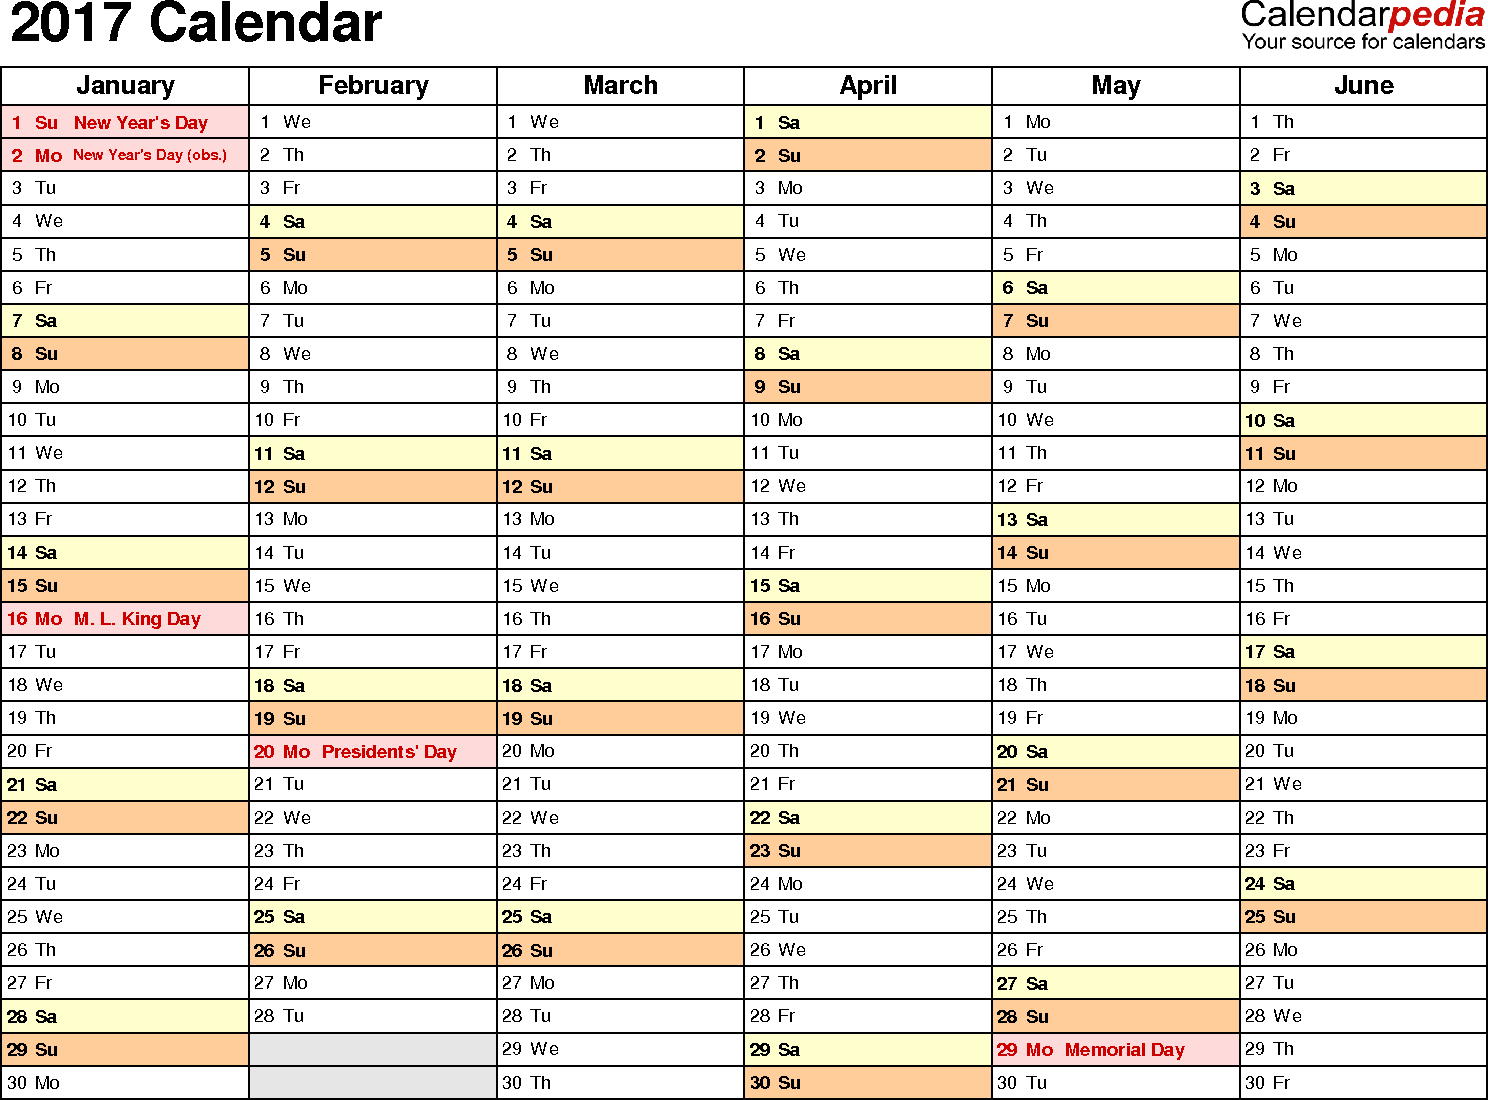 Ediblewildsus  Inspiring  Calendar  Download  Free Printable Excel Templates Xls With Exquisite Template   Calendar For Excel Months Horizontally  Pages Landscape Orientation With Delectable P Value Excel Formula Also Converting Txt To Excel In Addition Difference Between  Dates In Excel And Px Excel As Well As How To Build A Database In Excel Additionally Excel Vba Interior Color From Calendarpediacom With Ediblewildsus  Exquisite  Calendar  Download  Free Printable Excel Templates Xls With Delectable Template   Calendar For Excel Months Horizontally  Pages Landscape Orientation And Inspiring P Value Excel Formula Also Converting Txt To Excel In Addition Difference Between  Dates In Excel From Calendarpediacom